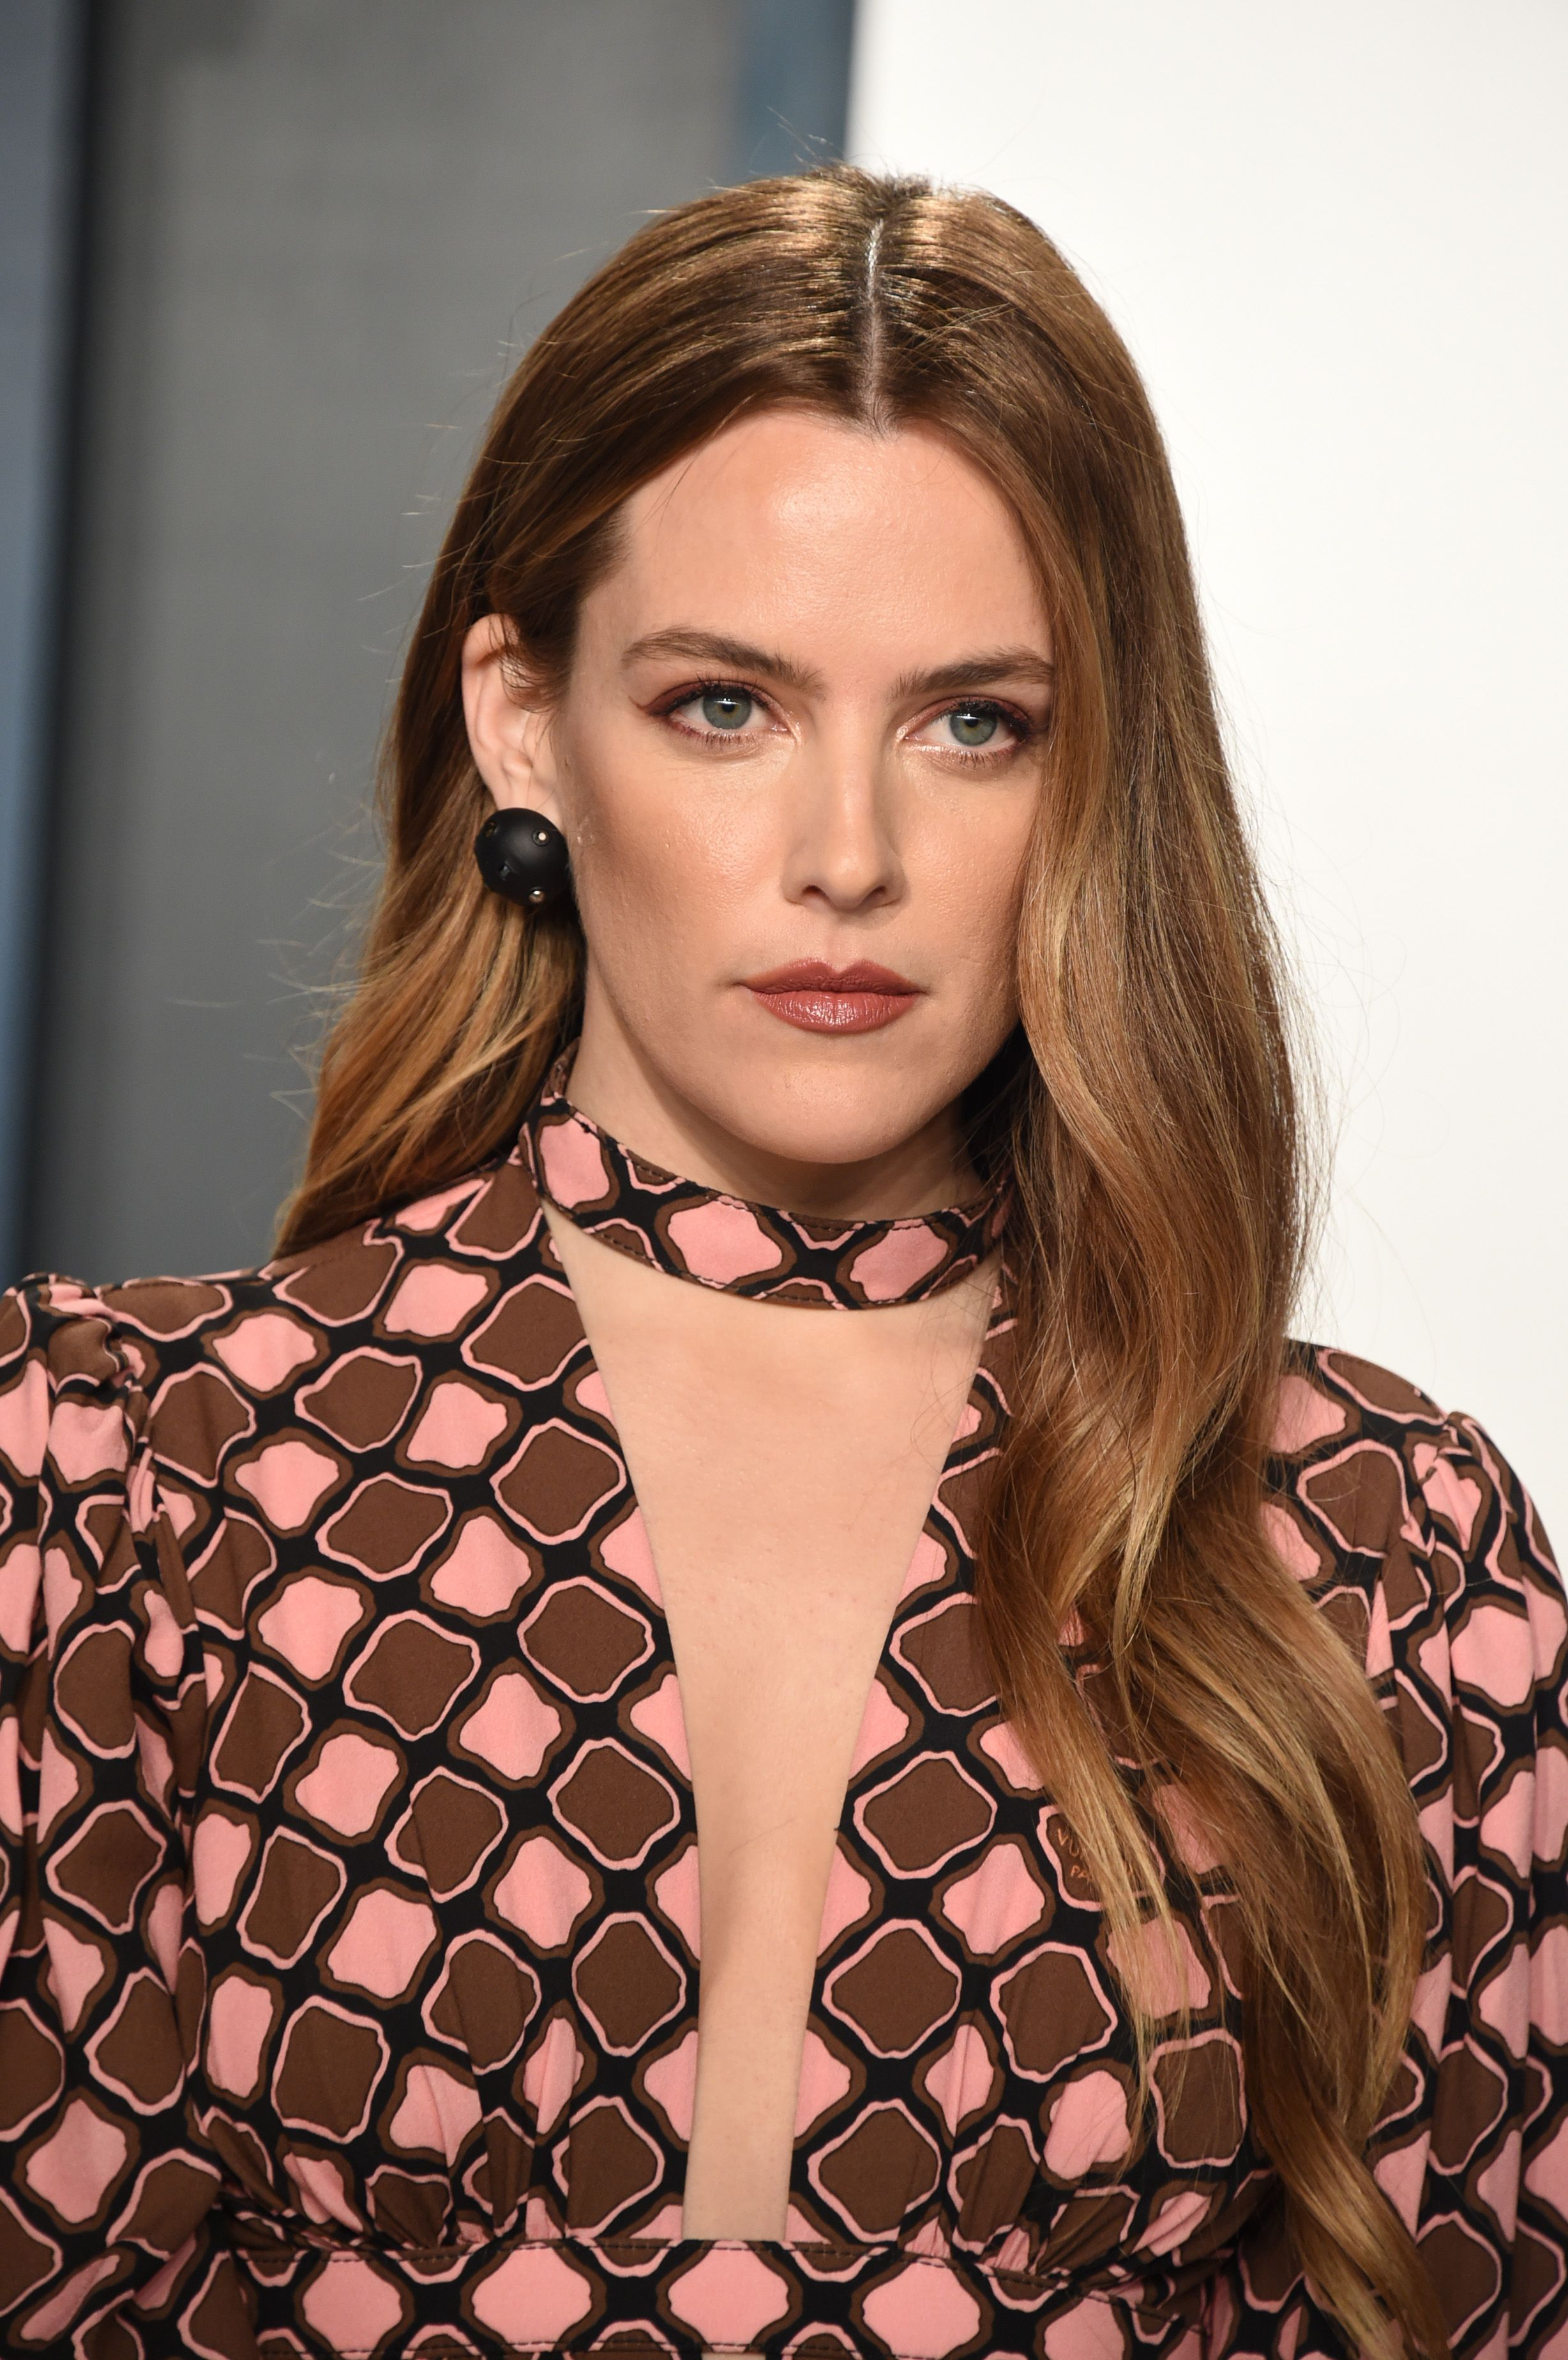 Riley Keough atthe Vanity Fair Oscar Partyat Wallis Annenberg Center for the Performing Arts on February 09, 2020, in Beverly Hills, California | Photo:John Shearer/Getty Images